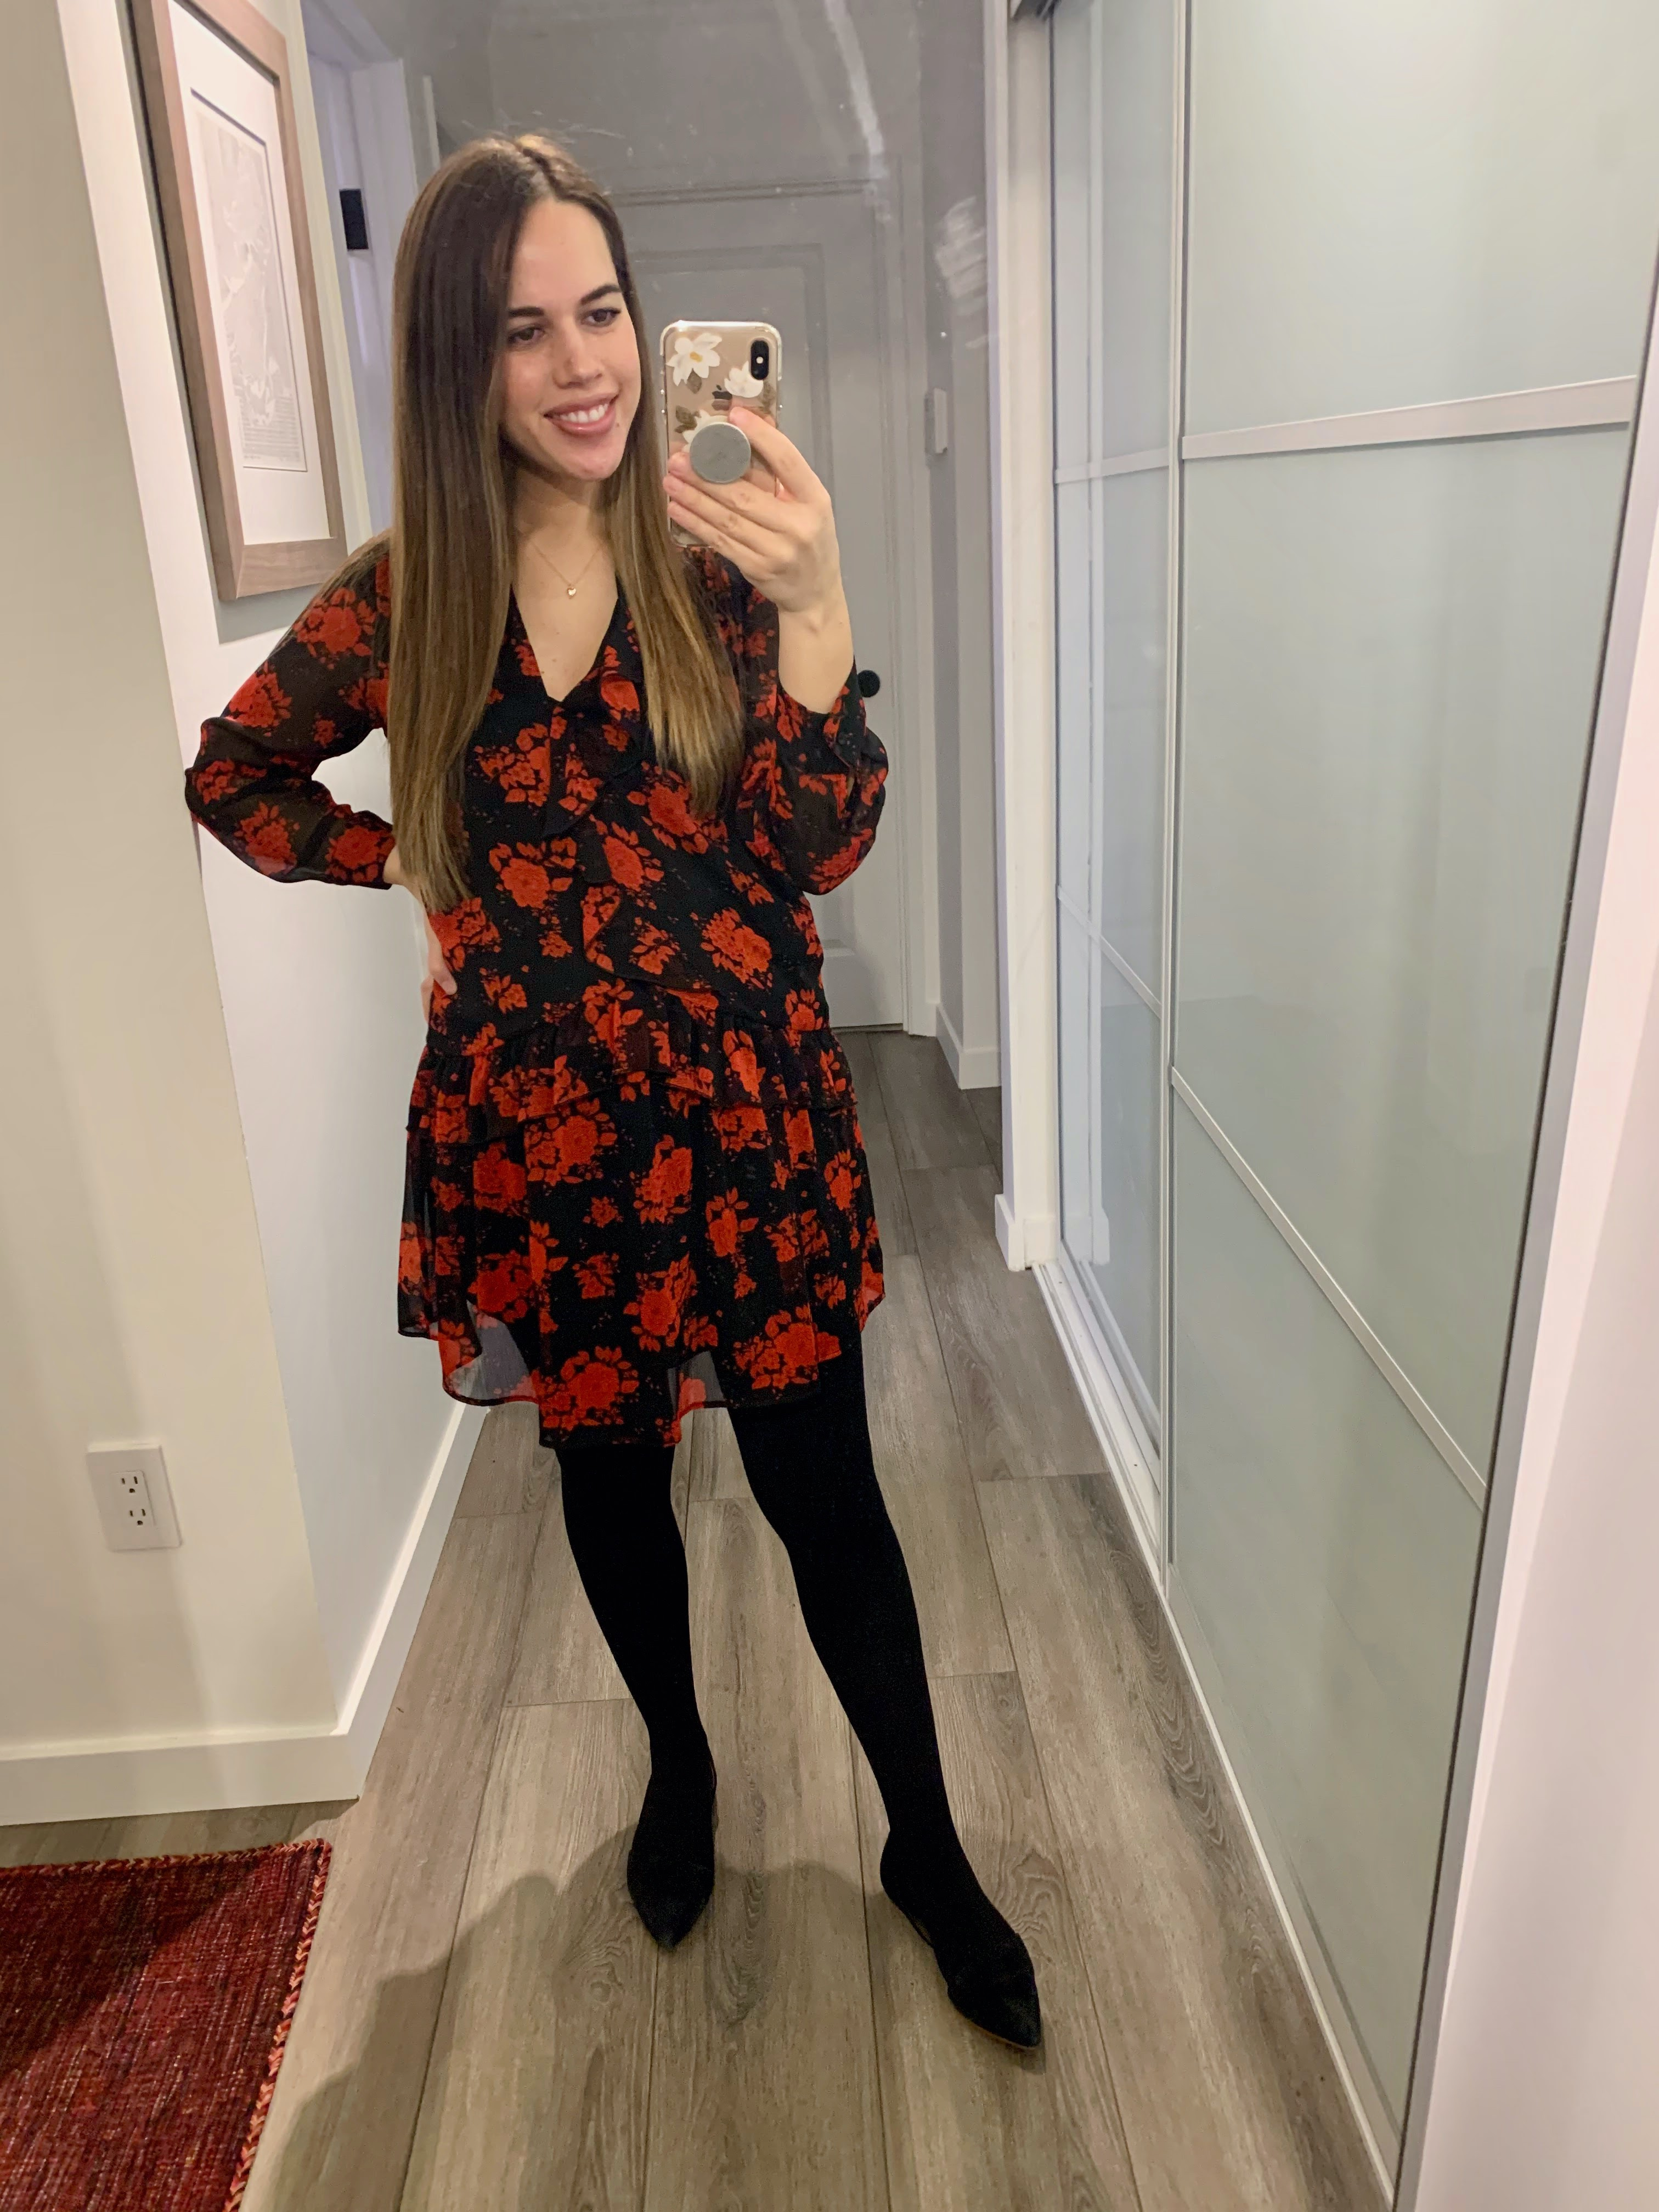 Jules in Flats - Floral Ruffle Front Mini Dress (Business Casual Workwear on a Budget)